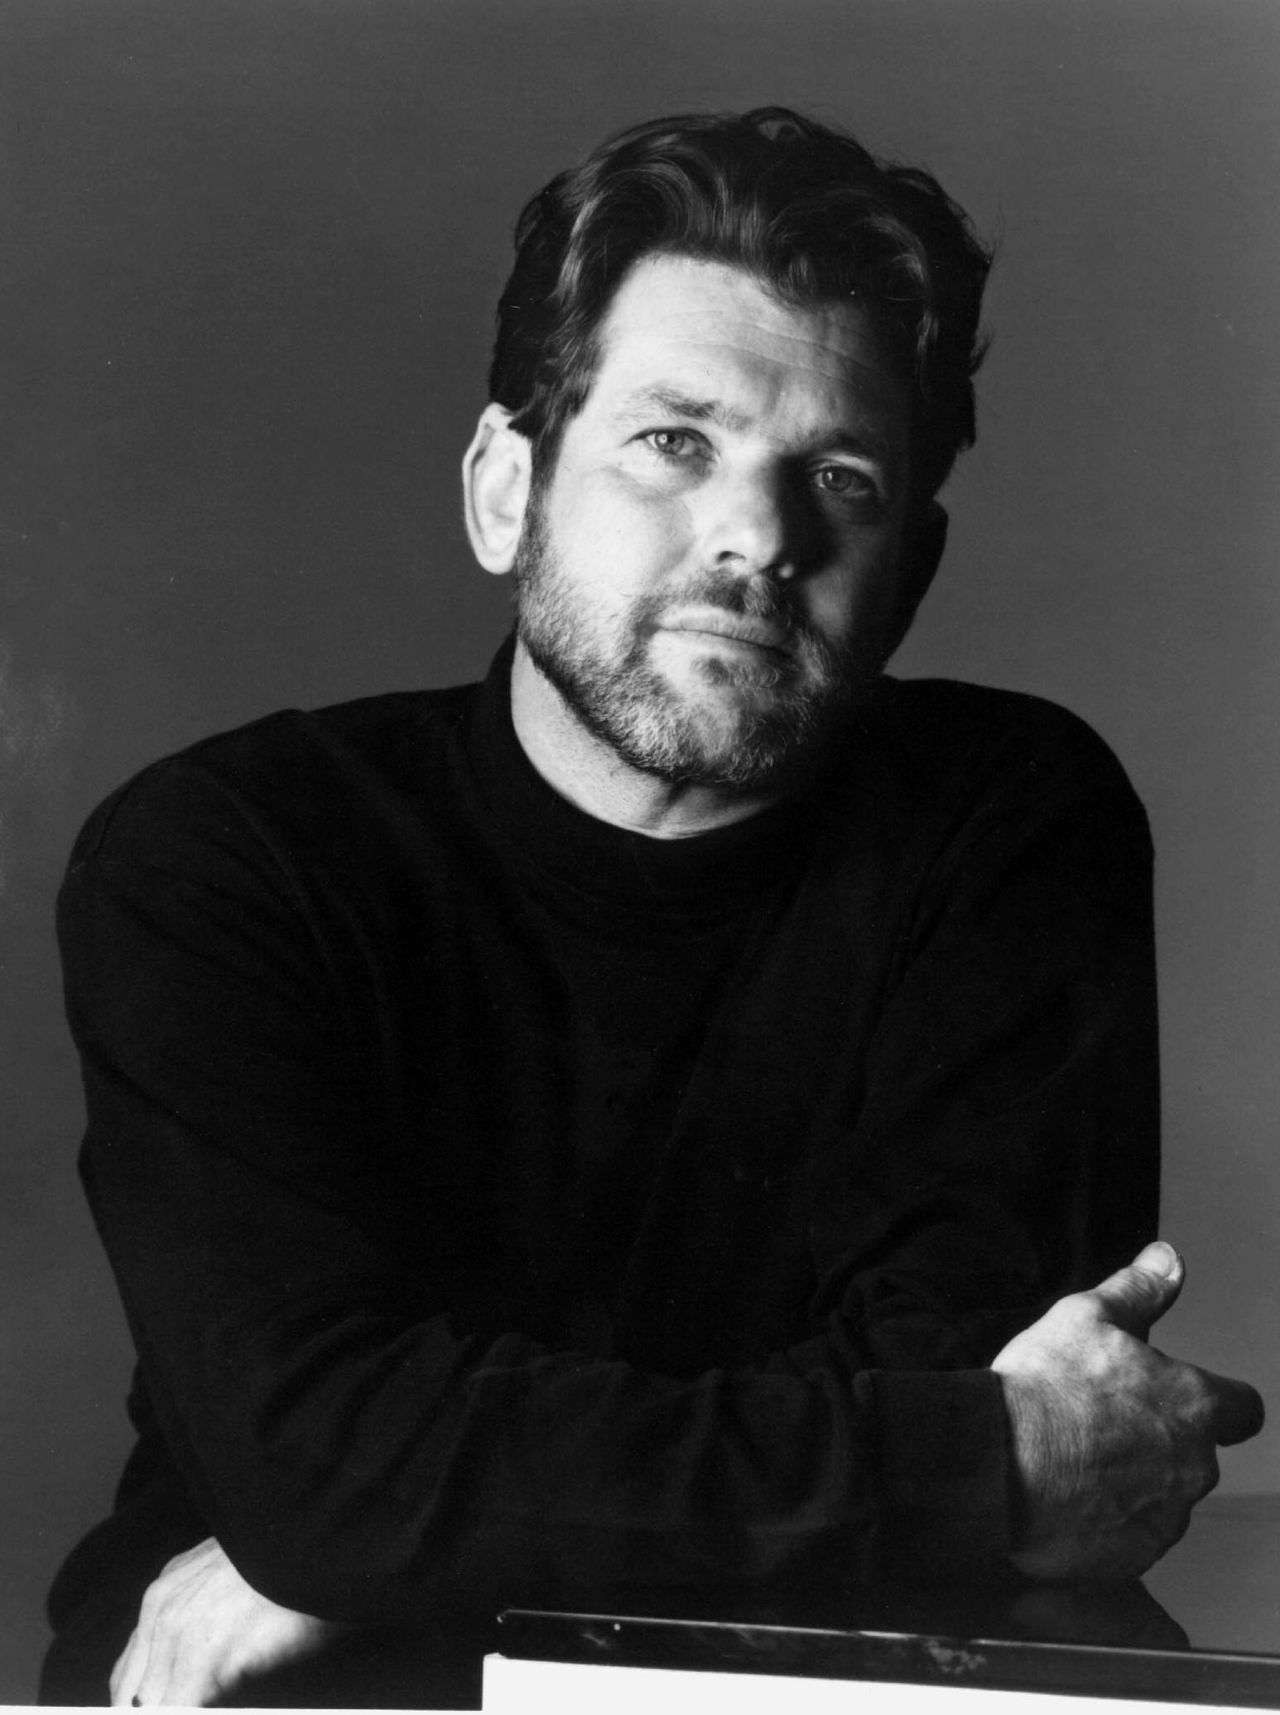 "Jann Wenner, co-author of the oral biography ""Gonzo: The Life of Hunter S. Thompson,"" poses in this undated handout photo released to the media on Friday, Oct. 19, 2007. Photographer: David Turner/Hachette Book Group via Bloomberg News"